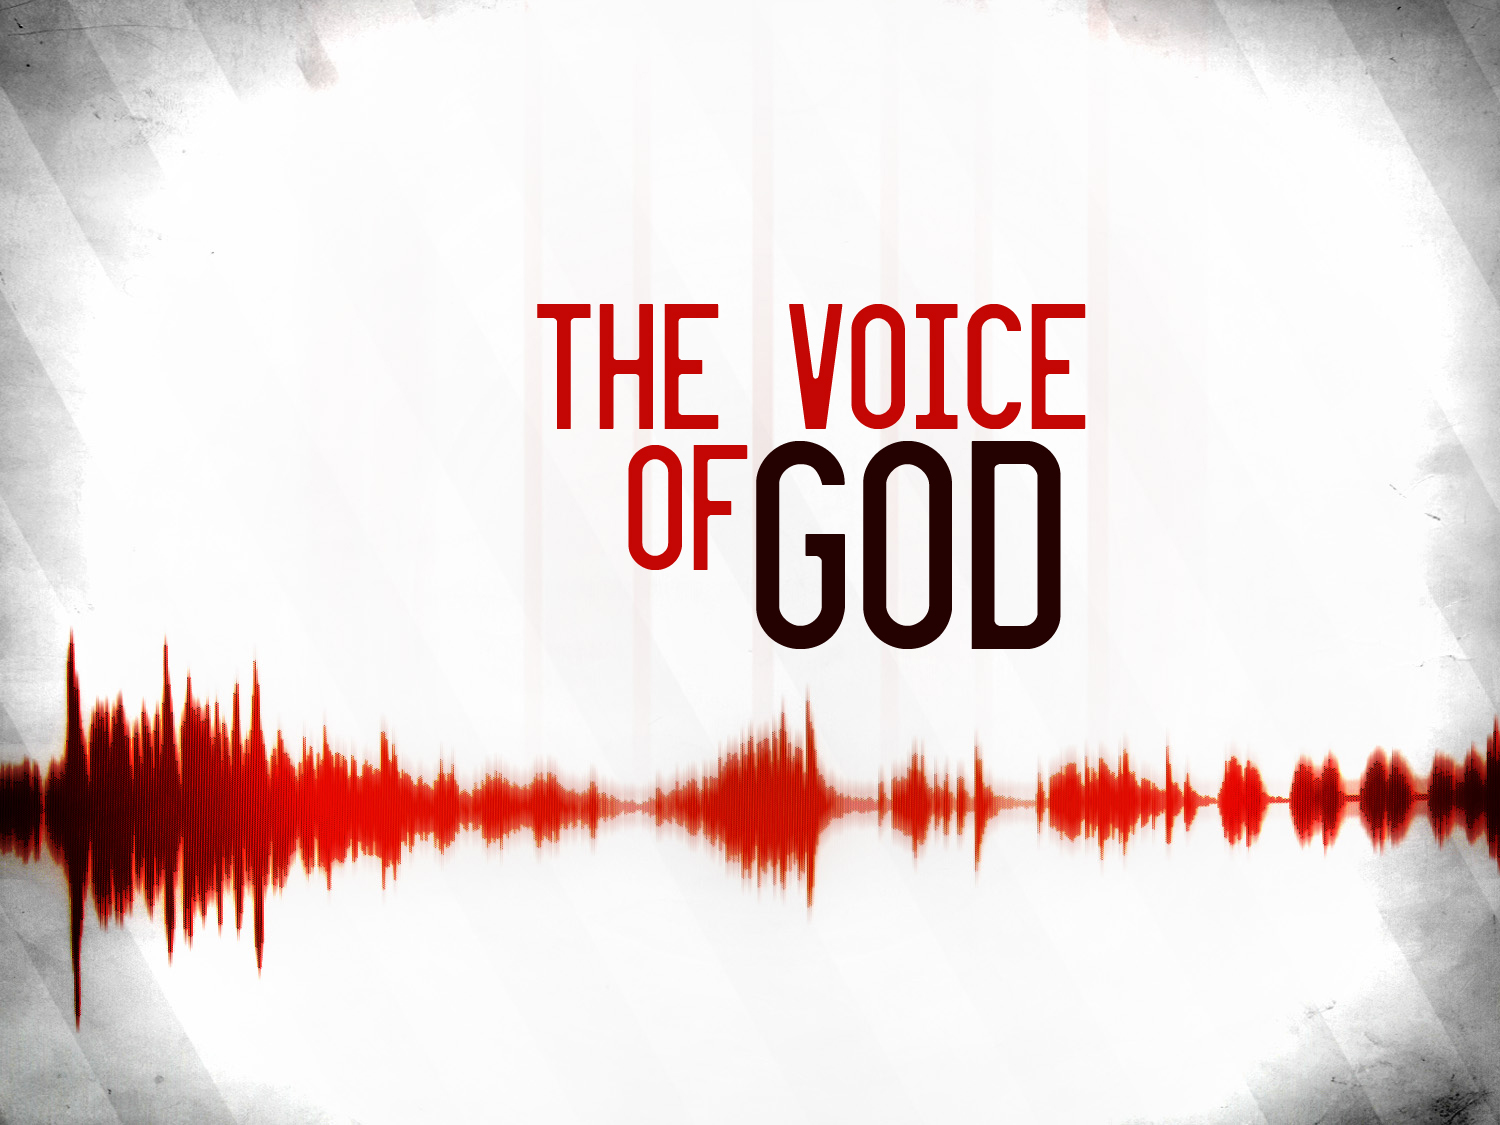 Are You Missing the Voice of God in this Way?